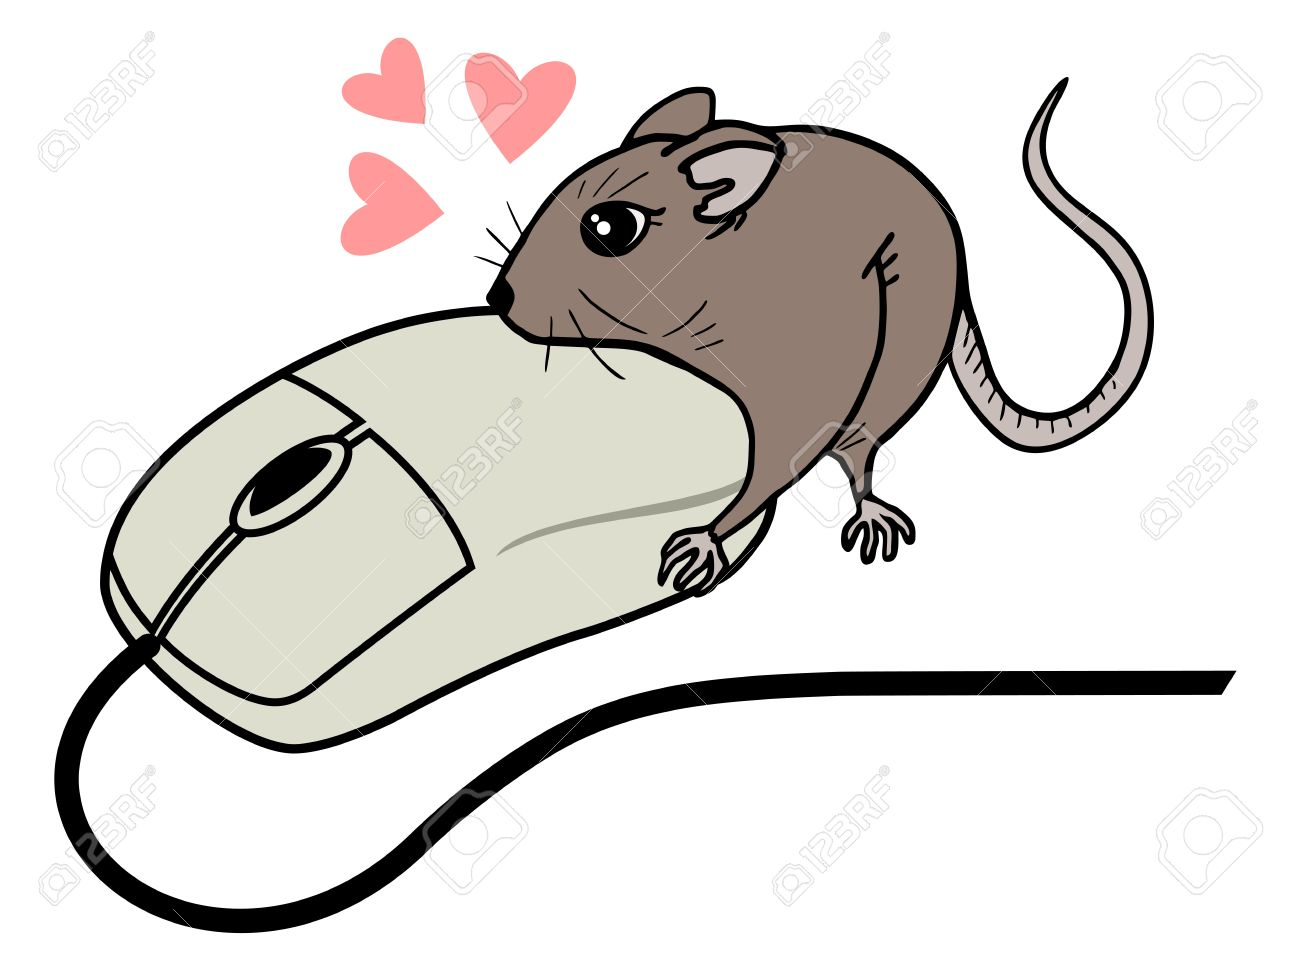 1300x962 Funny Computer Mouse Draw Royalty Free Cliparts, Vectors,